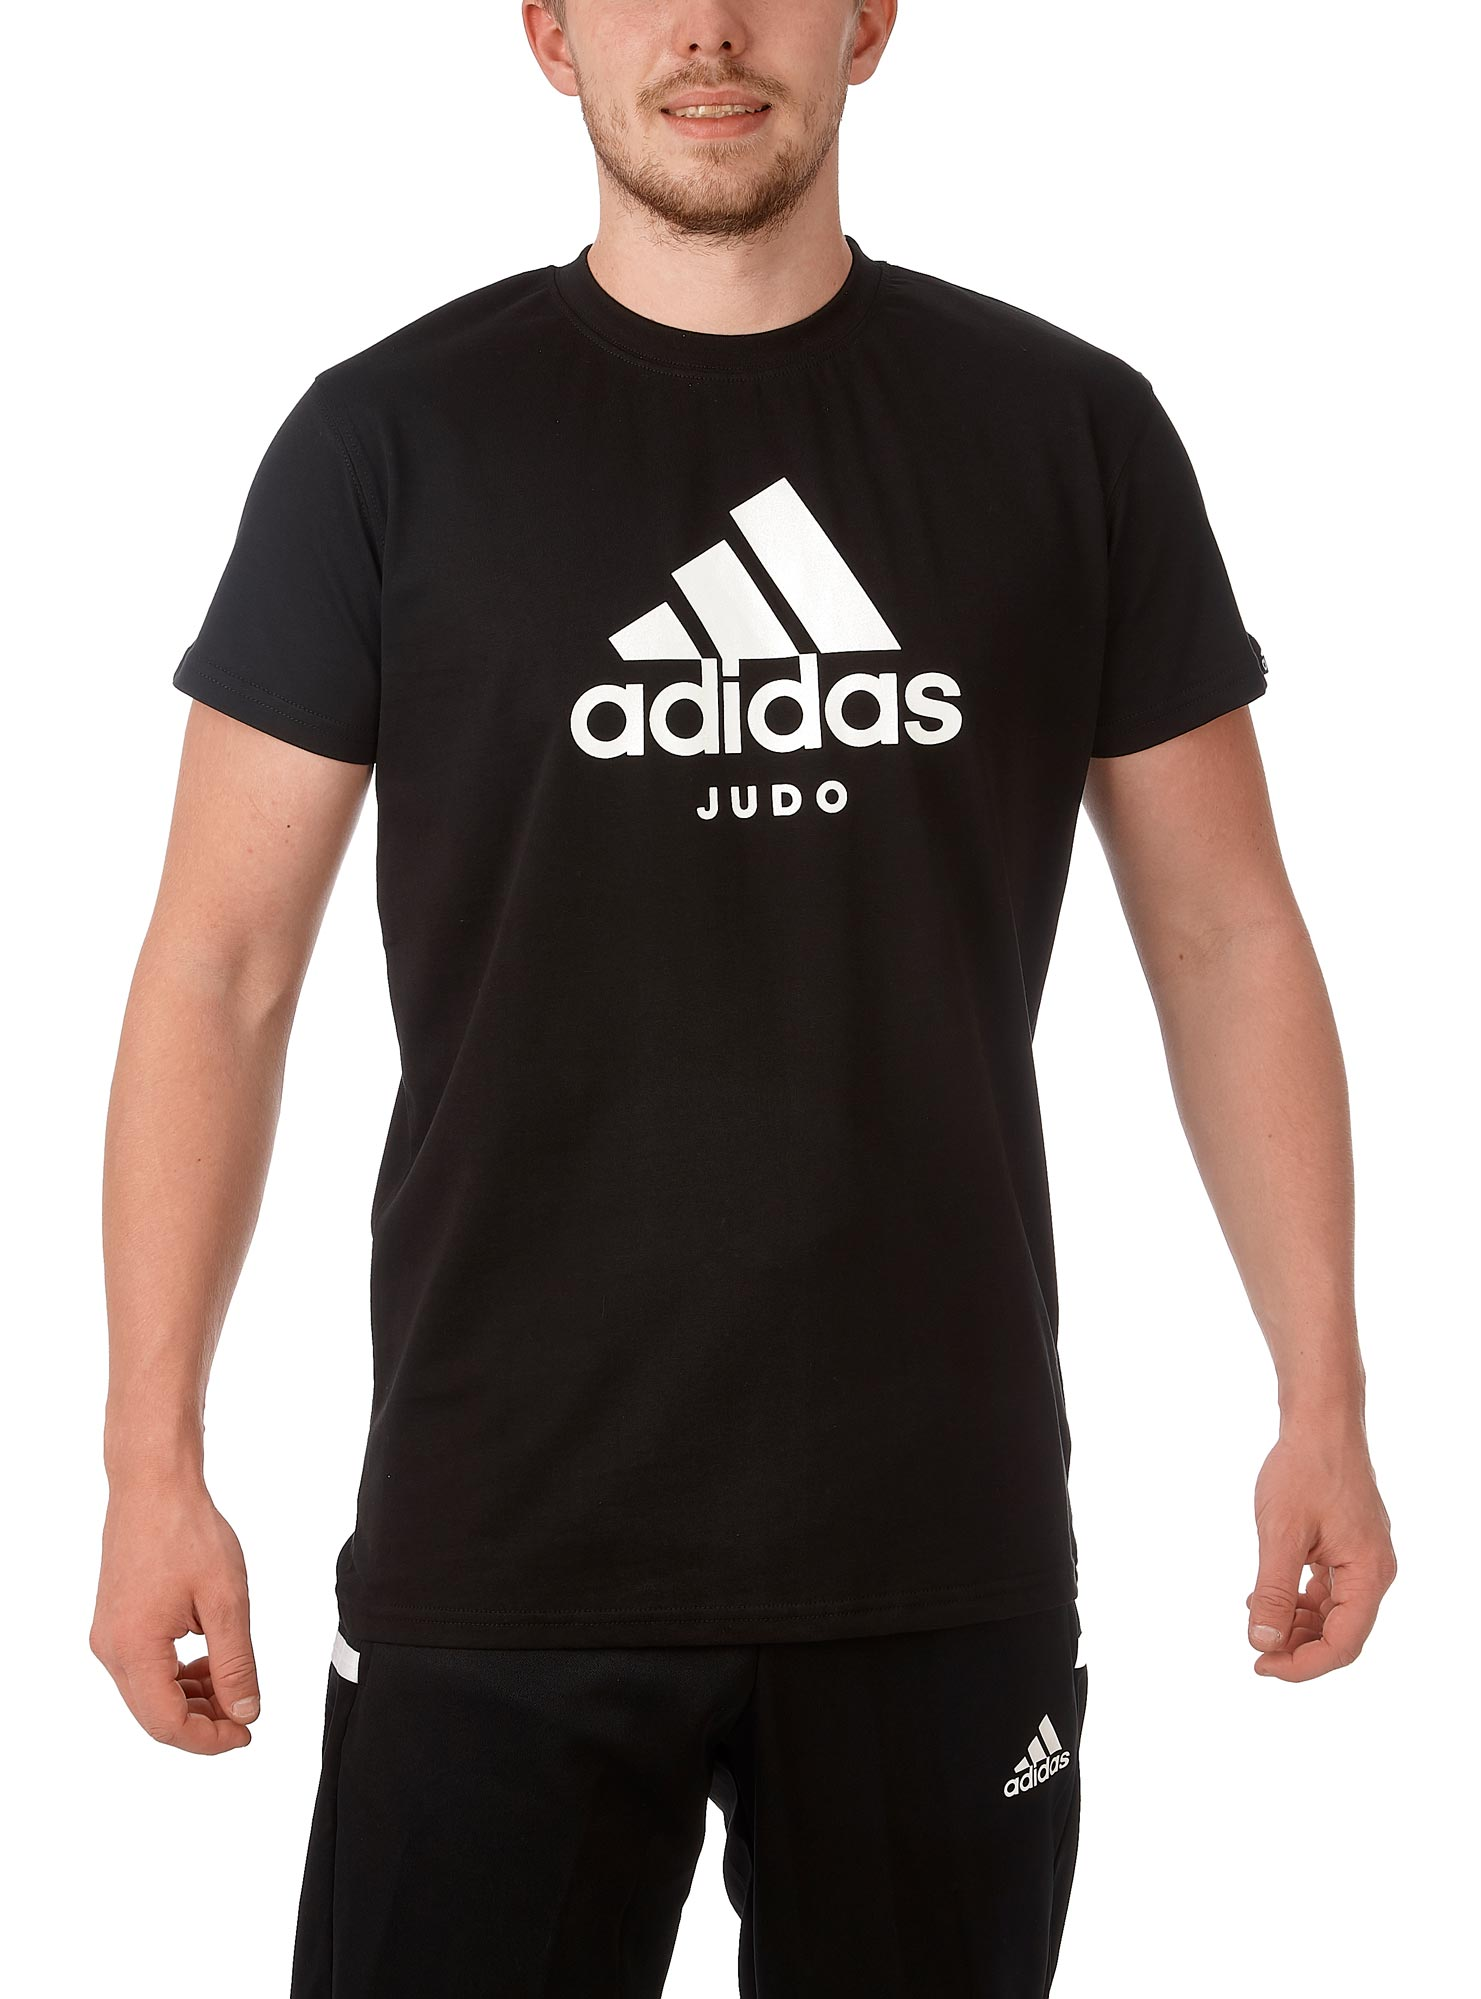 adidas Community Line T Shirt Judo Performance ADICTJ blackwhite